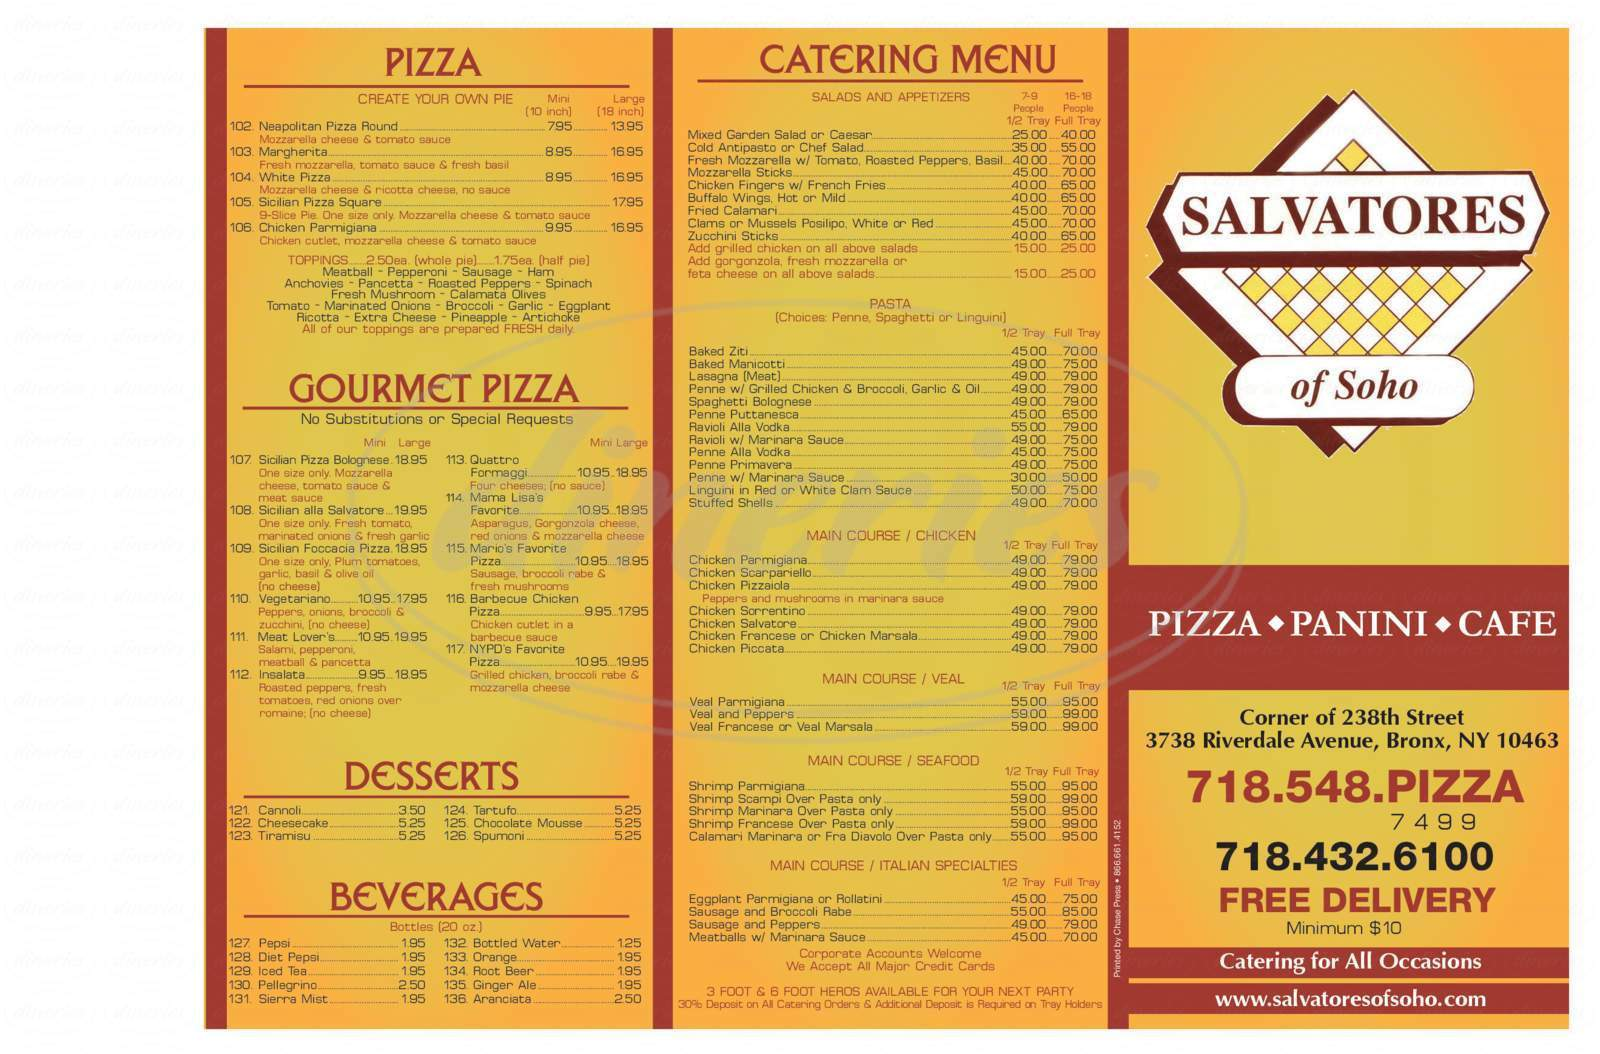 menu for Salvatores of Soho